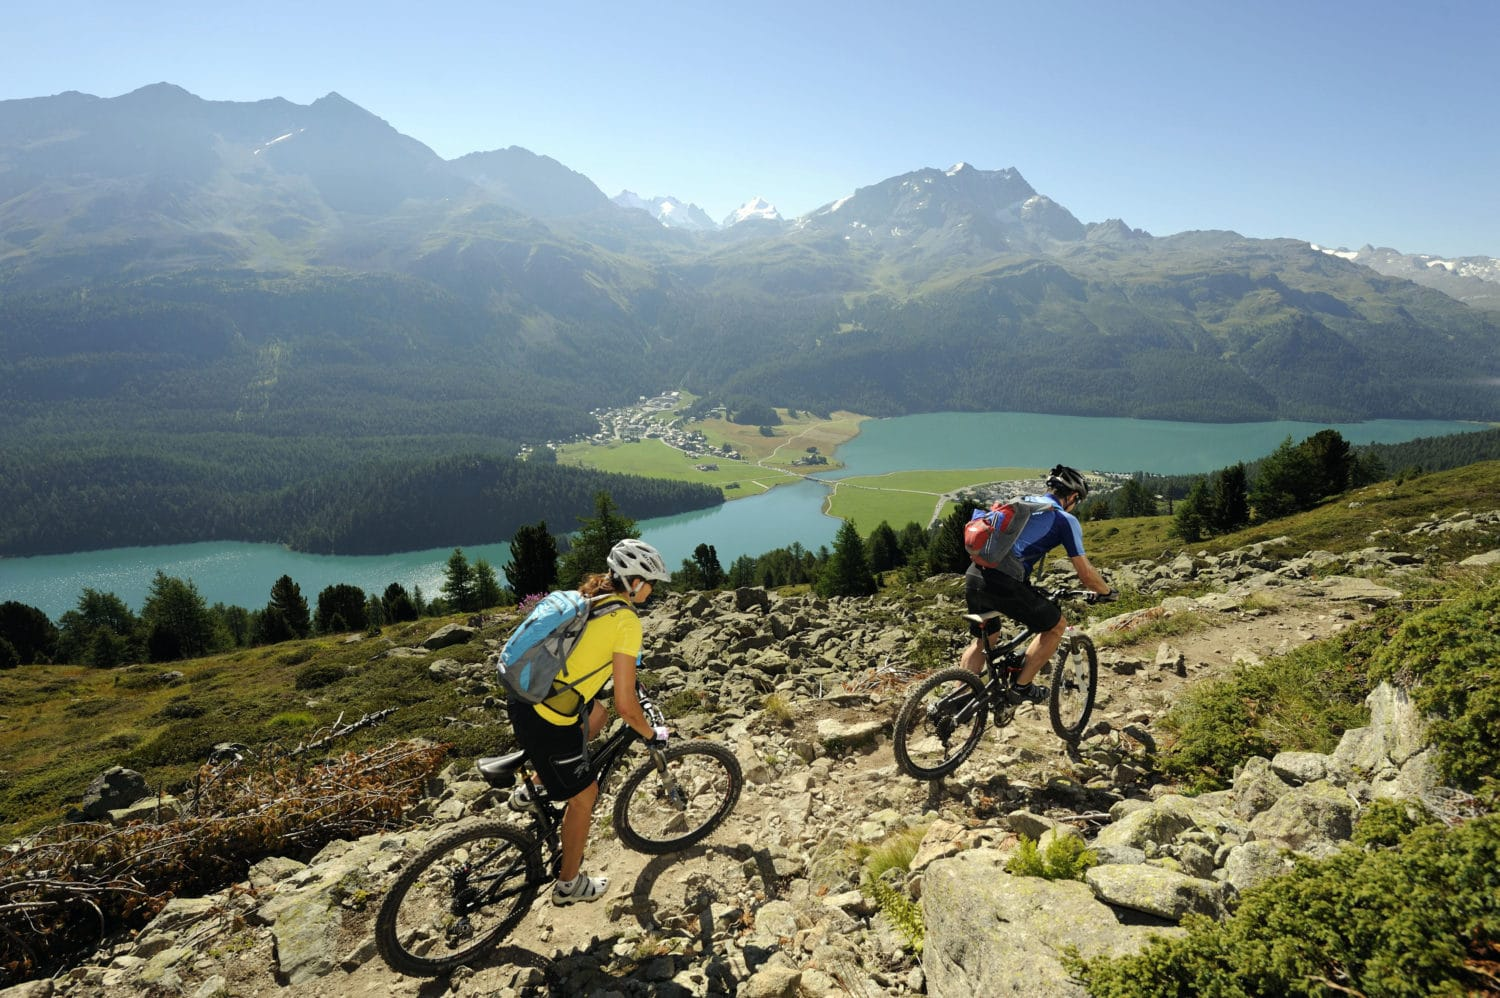 ENGADIN ST. MORITZ - Mountainbiker auf dem Padella-Corviglia-Panoramatrail, im Orchas-Gebiet, unterhalb von Piz Albana. Blick auf Silvaplana, Champferer und Silvaplaner See, Silvaplana-Surlej und Berge Piz San Gian (3134 m), Piz Surlej (3188 m), Munt Arlas (3127 m), Fuorcla Surlej (2755 m), Piz Murtel (3433 m) und Piz Corvatsch (3451 m). Mountainbiker sul trail panoramico Padella-Corviglia nella zona di Orchas, ai piedi del Piz Albana. Vista sui laghi di Silvaplana, Champfer e Silvaplana, e le montagne Piz San Gian (3134 m), Piz Surlej (3188 m), Munt Arlas (3127 m), Fuorcla Surlej (2755 m), Piz Murtel (3433 m) e Piz Corvatsch (3451 m). Mountain biker on the Padella-Corviglia Panorama Trail, in the Orchas region, below Piz Albana. View of Silvaplana, Lake Champfer and Lake Silvaplana, Silvaplana-Surlej and the mountains Piz San Gian (3,134 m), Piz Surlej (3,188 m), Munt Arlas (3,127 m), Fuorcla Surlej (2,755 m), Piz Murtel (3,433 m) and Piz Corvatsch (3,451 m). Copyright by: ENGADIN St. Moritz By-line: swiss-image.ch/Ralf Glaser